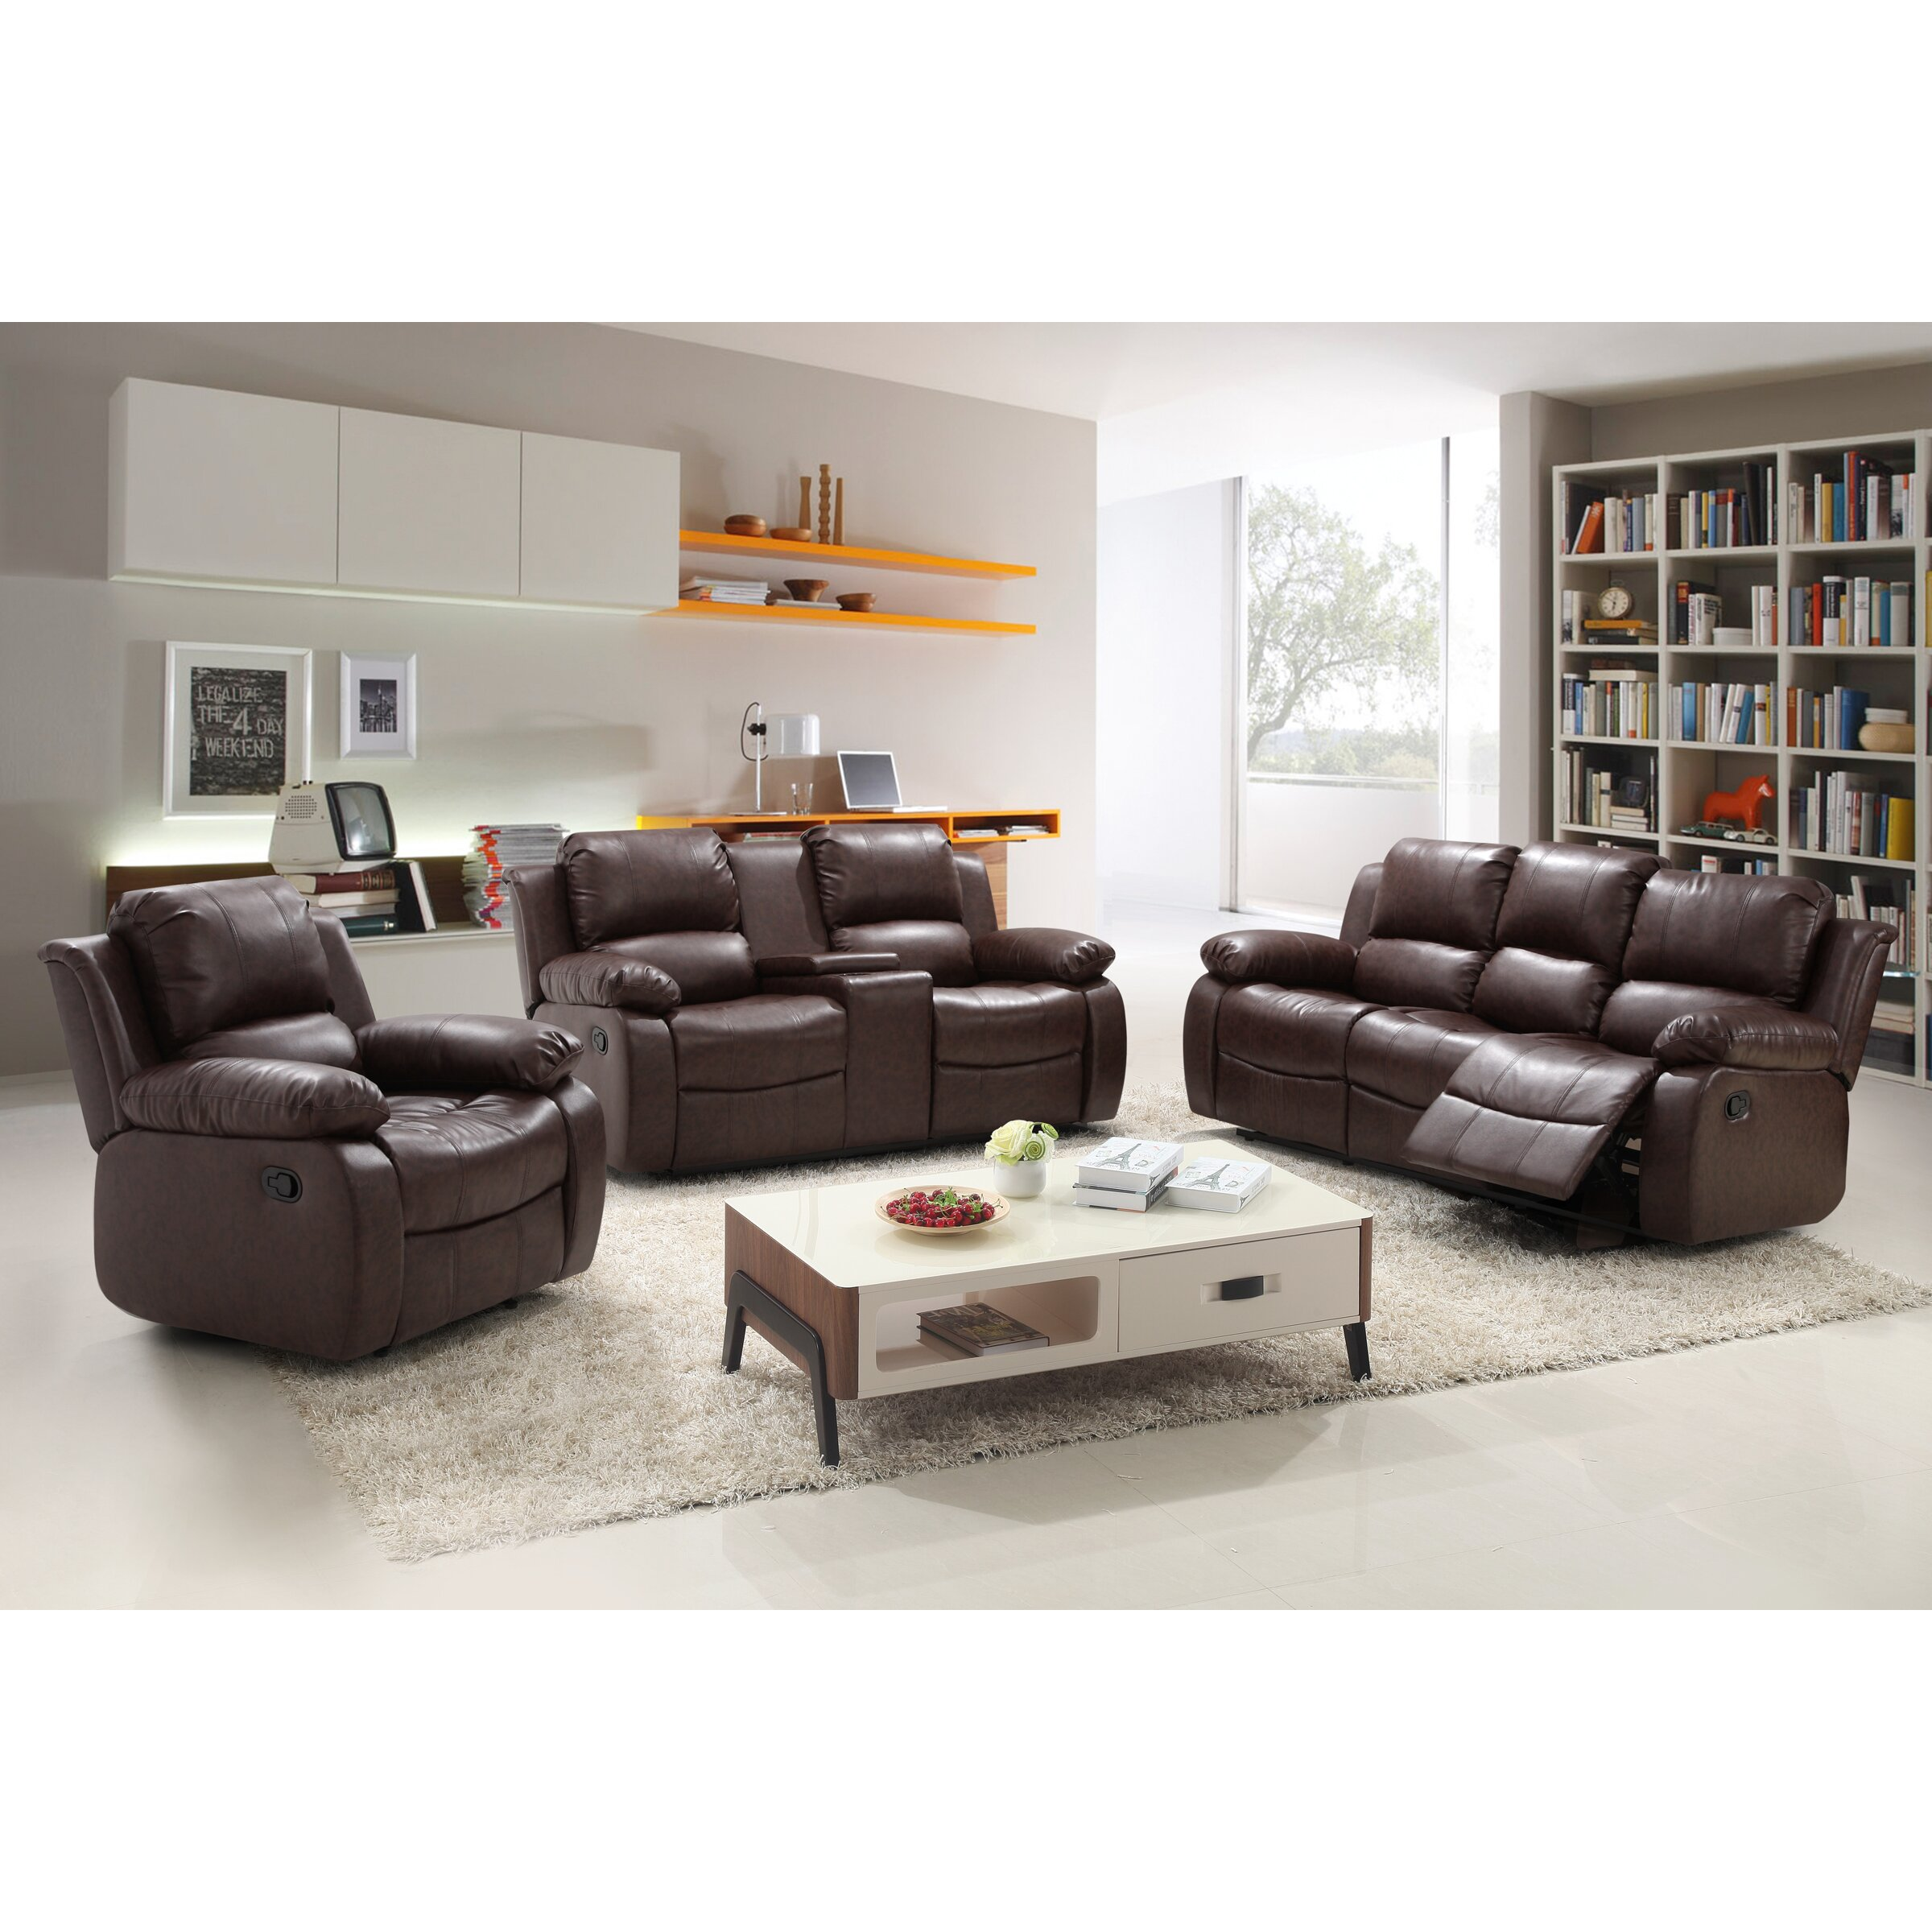 3 piece reclining living room set three living room set 23988